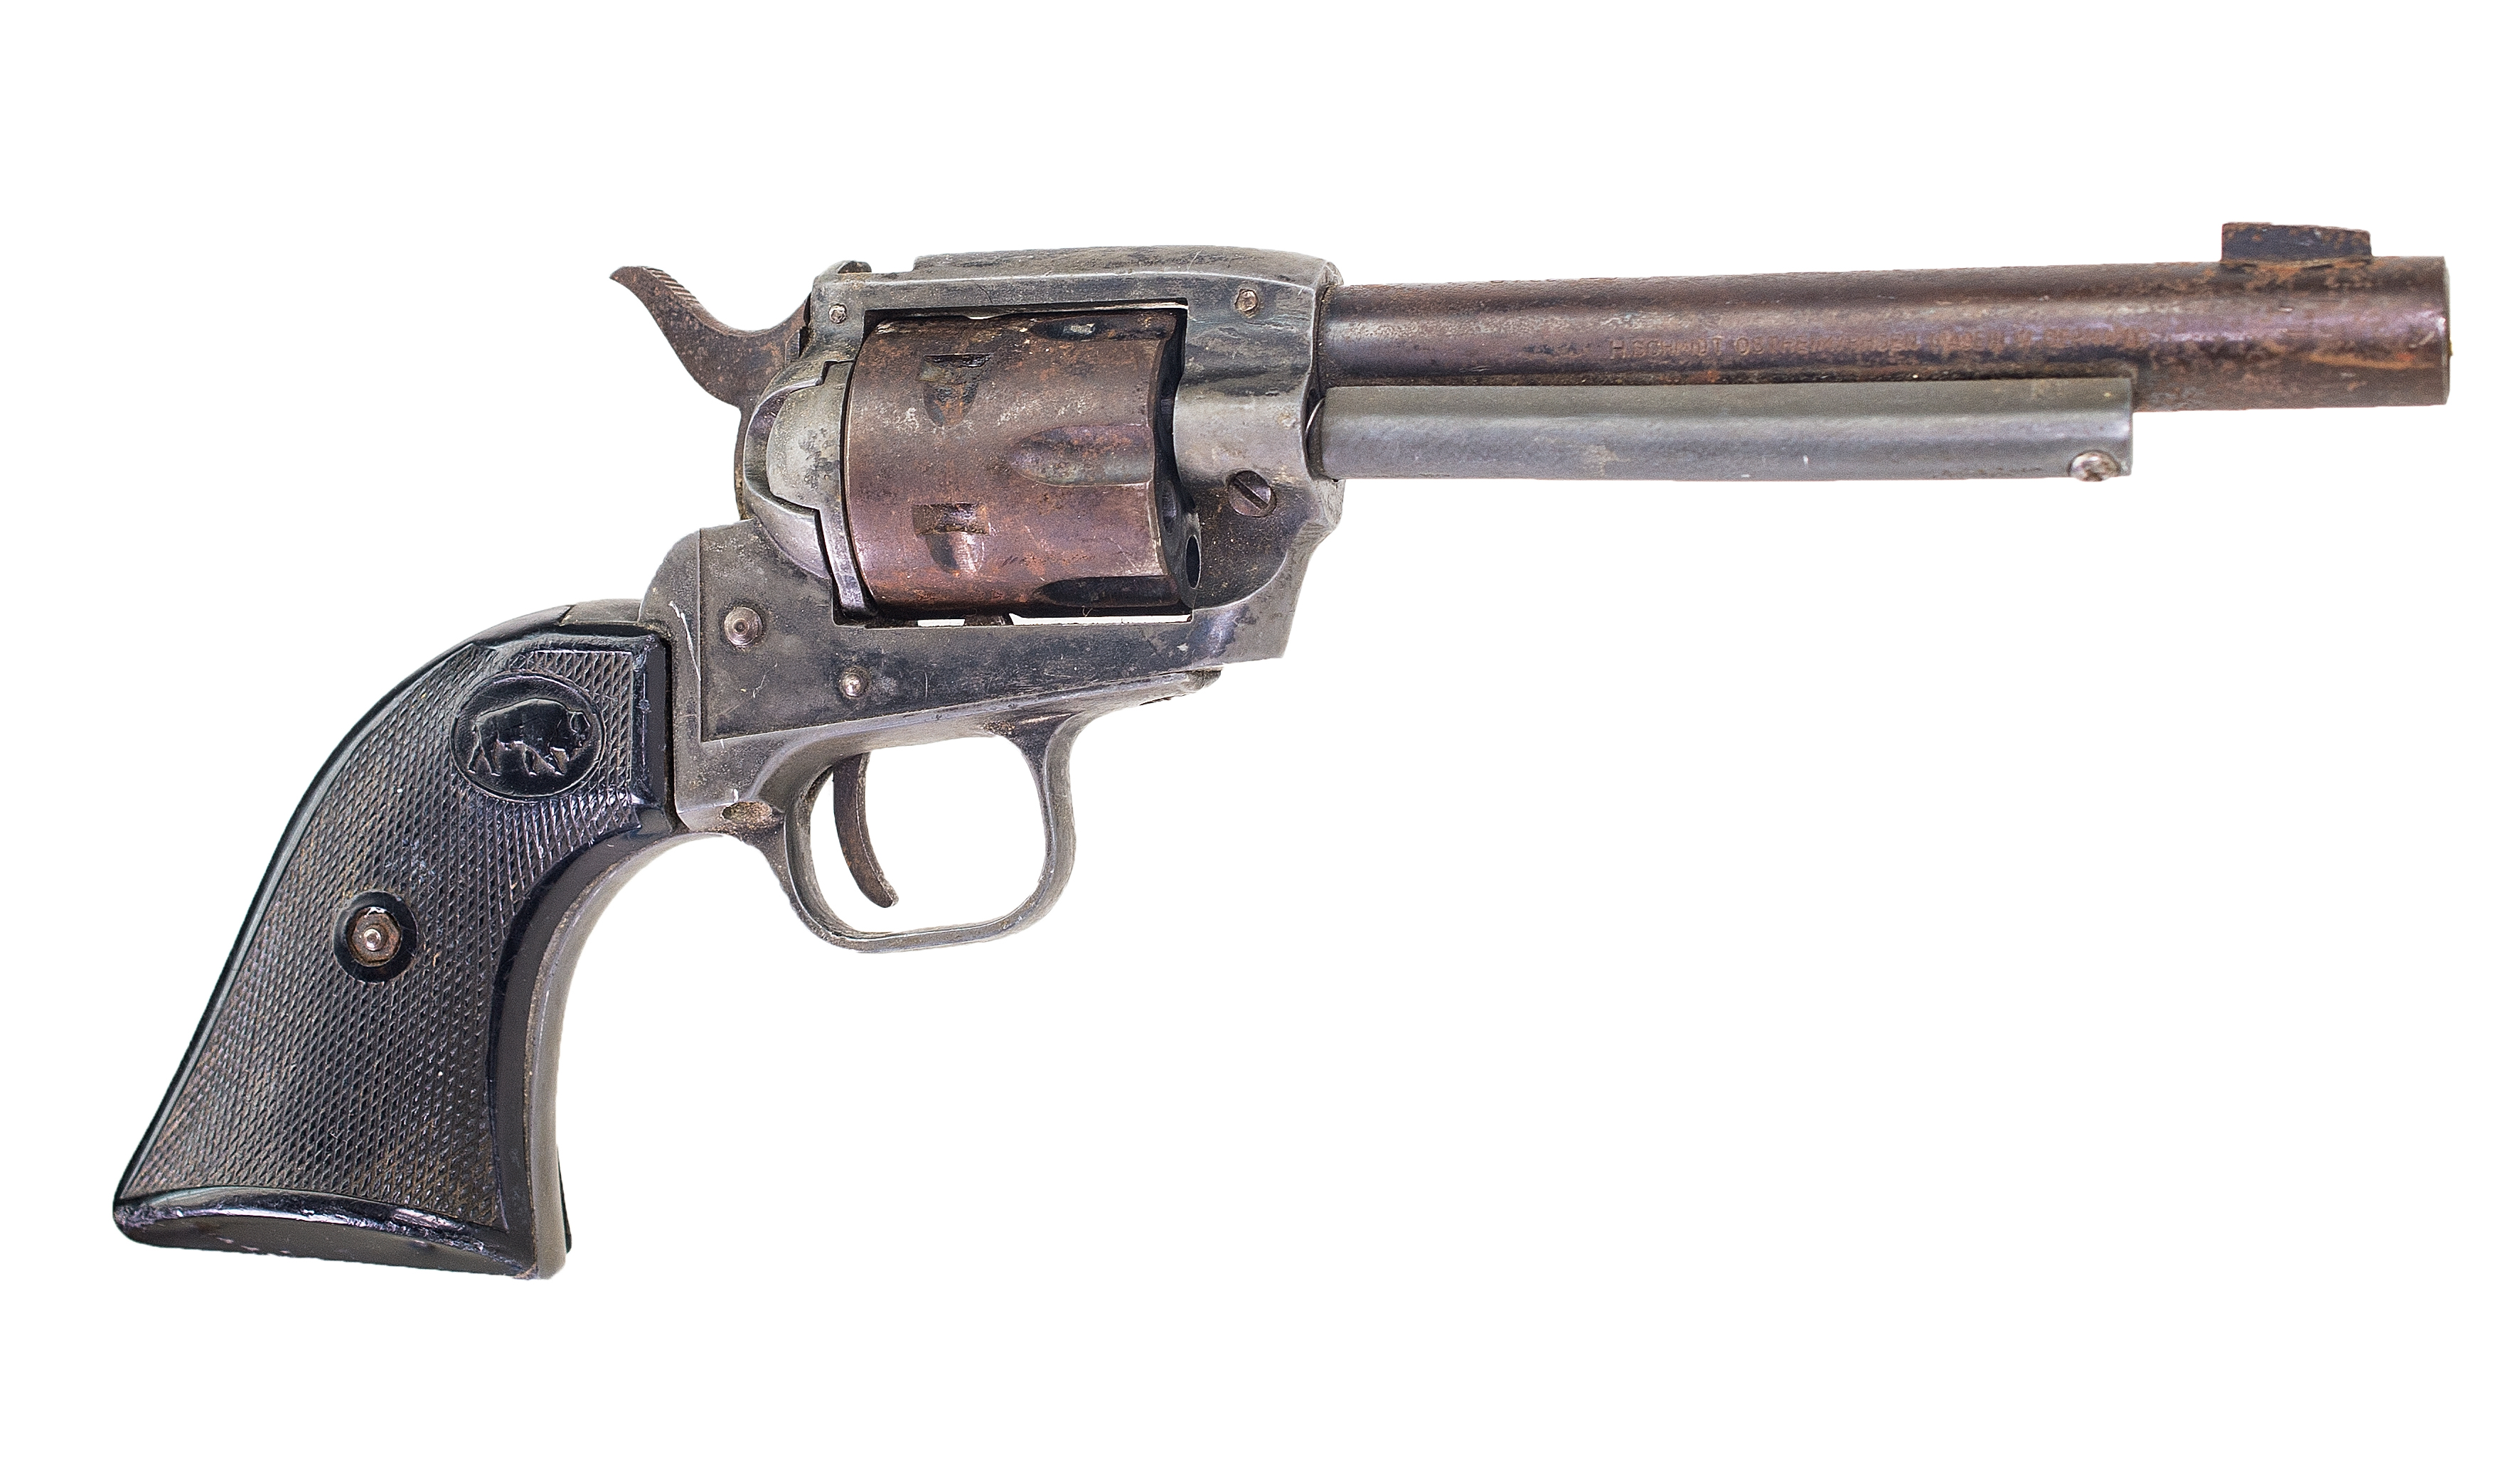 HAWES REVOLVER (Auction ID: 8428544, End Time : Jun  11, 2017 21:50